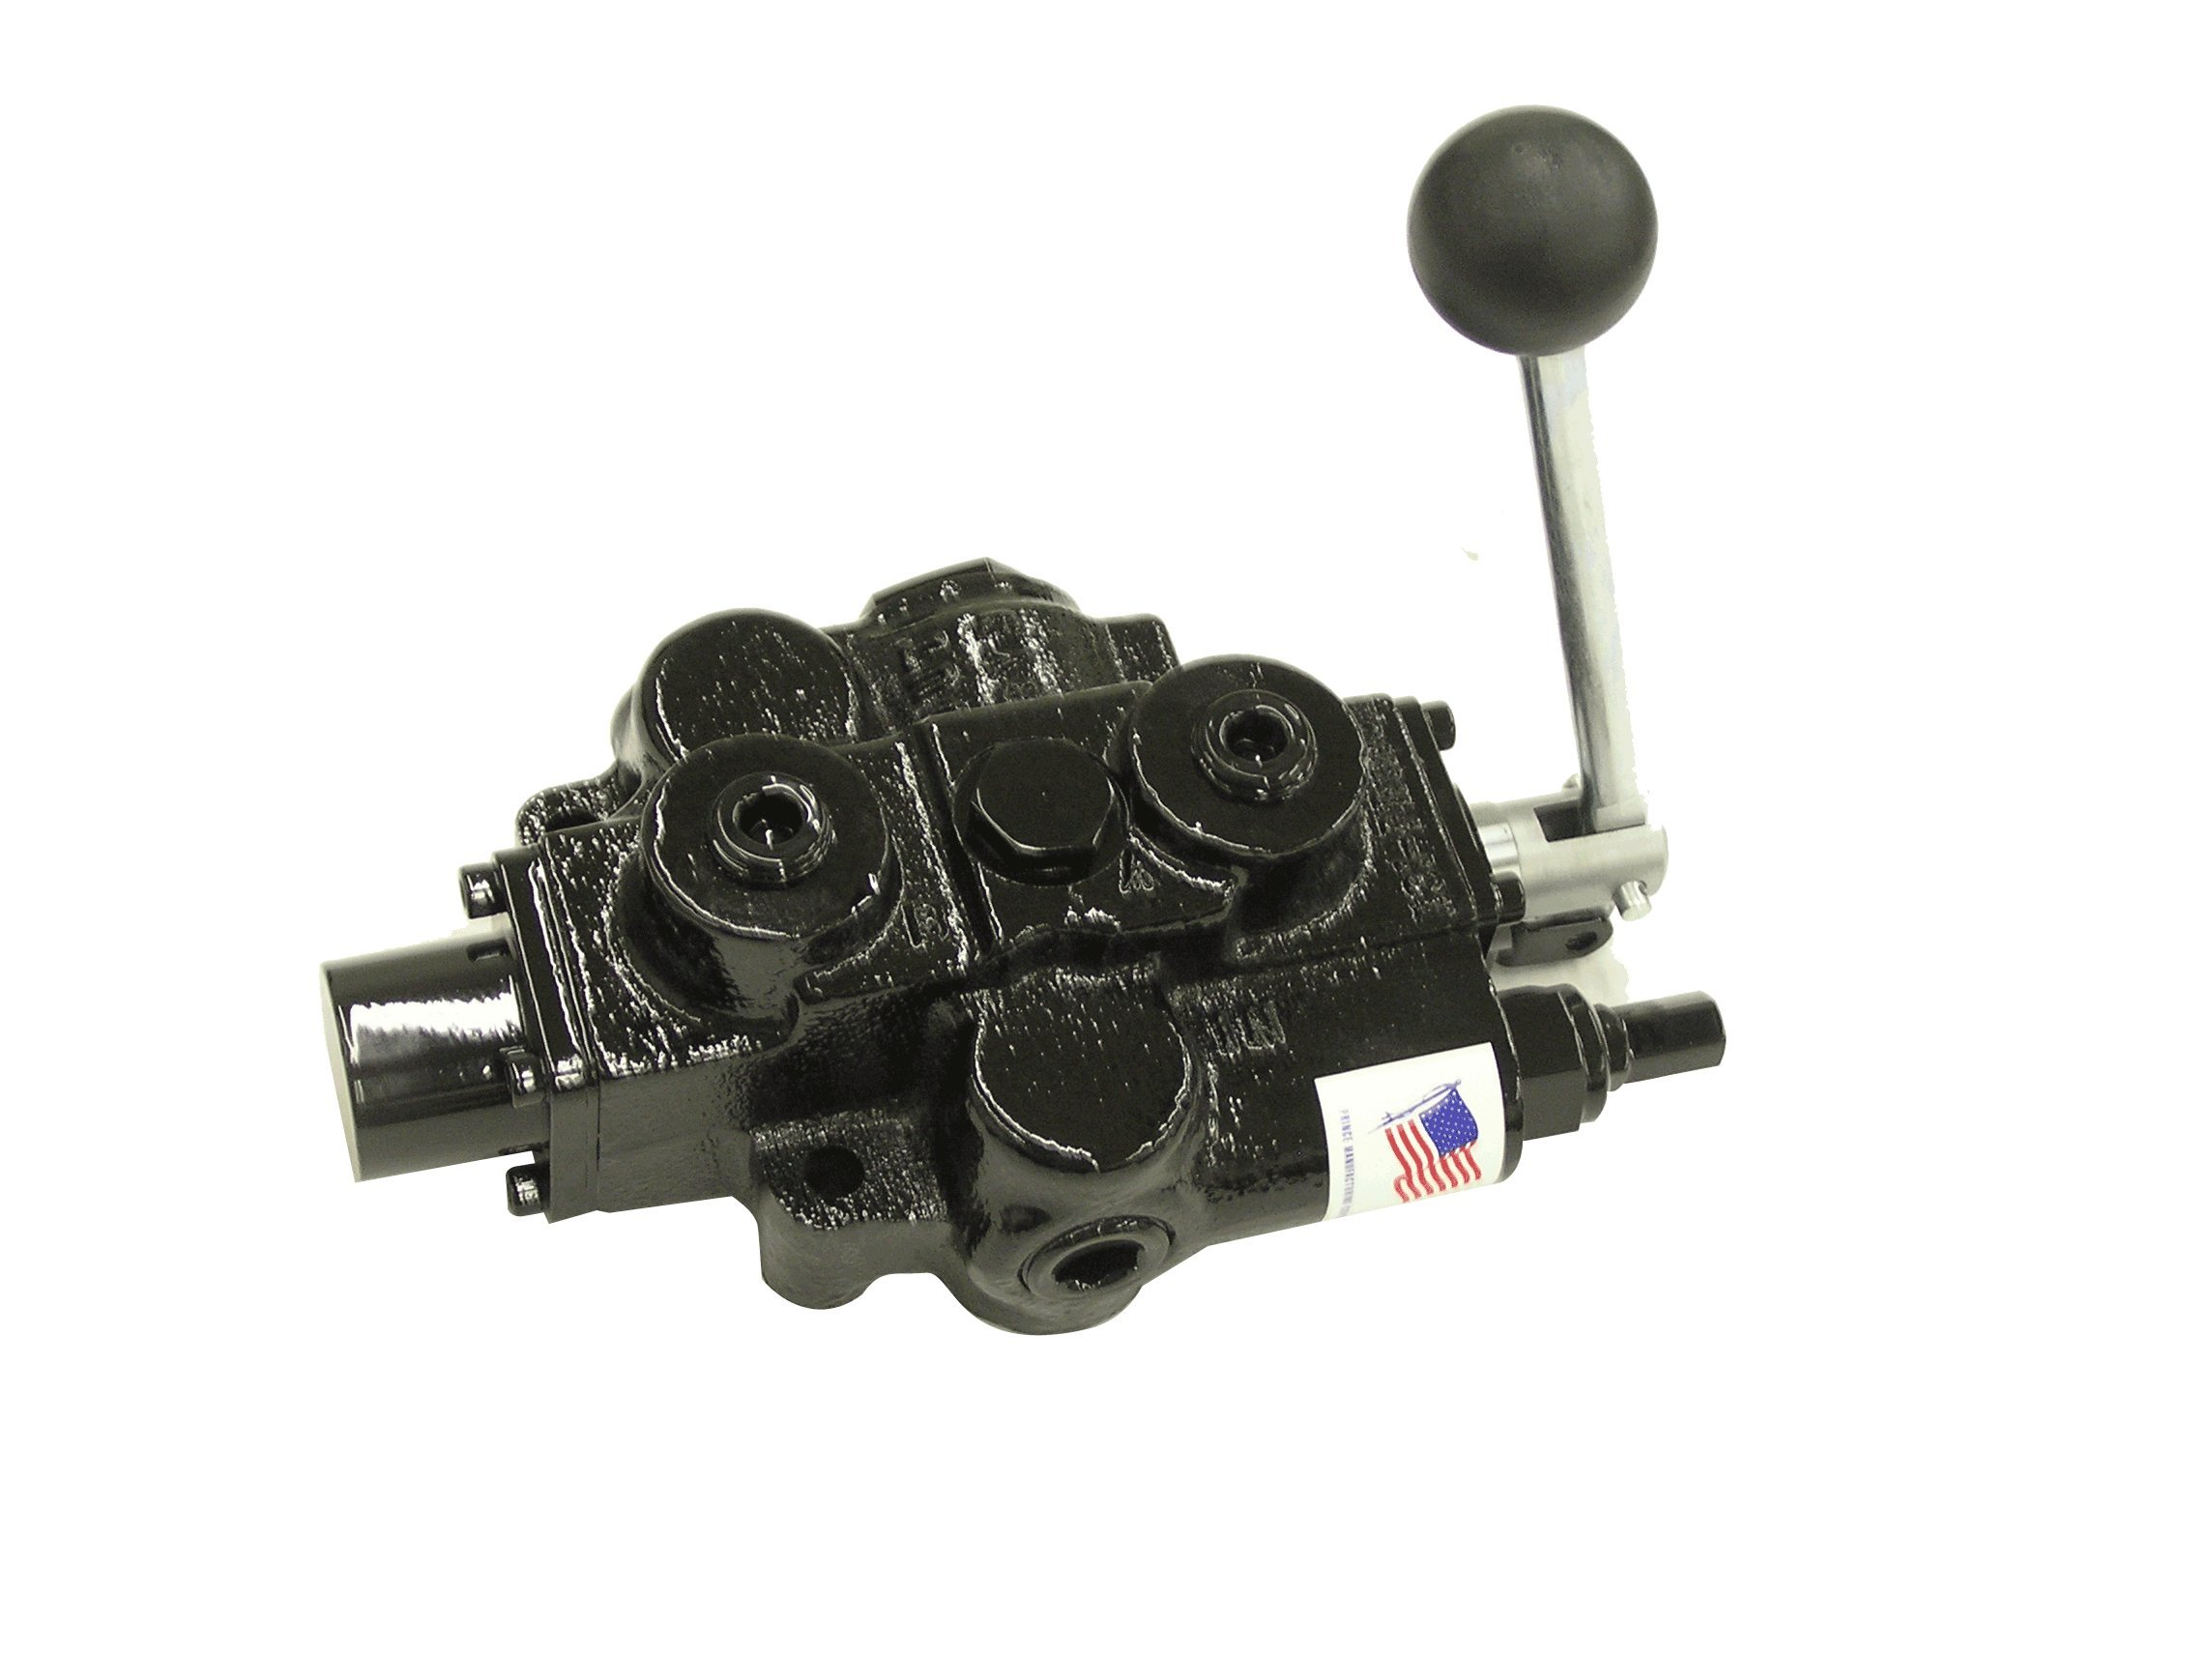 Prince RD512CA5A4B1 Directional Control Valve, Single Spool, 4 Ways, 3 Positions, Spring Center To Neutral, Cast Iron, 3000 psi, Lever Handle, 30 gpm, In/Out: 3/4'' NPTF, Work 1/2'' NPTF